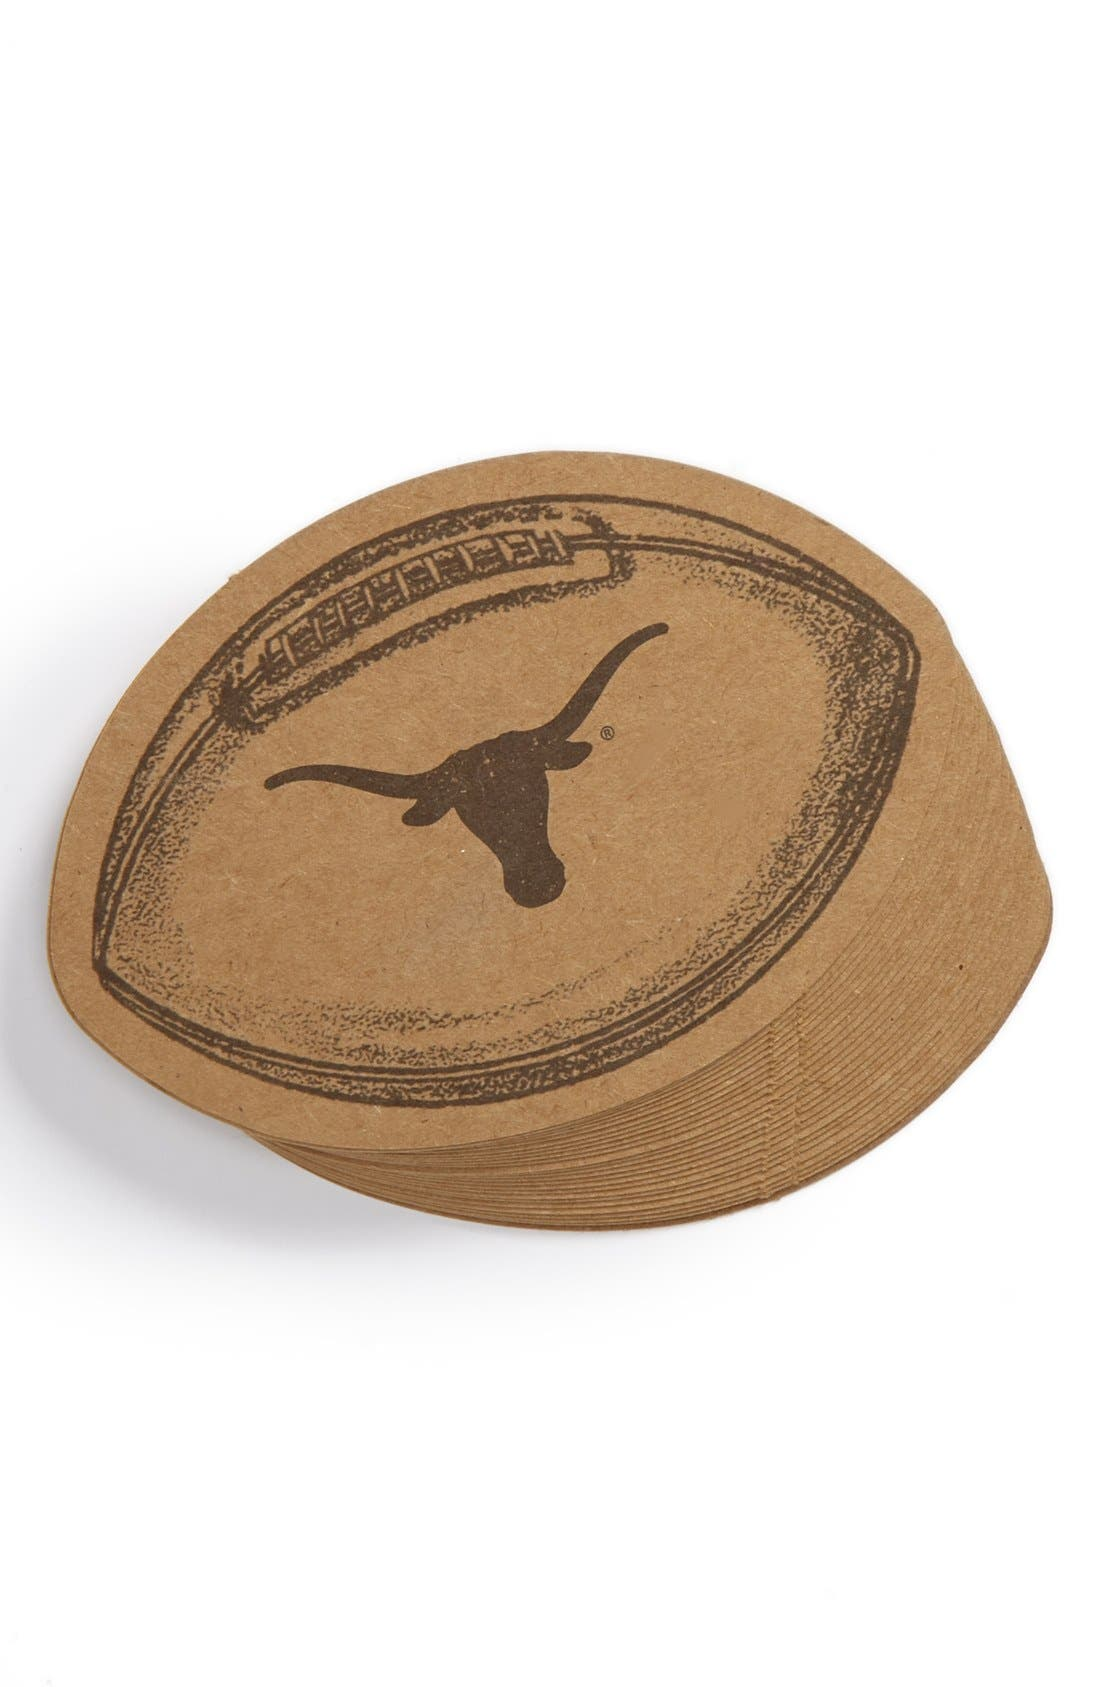 Alternate Image 1 Selected - Kitchen Papers by Cake 'Texas Longhorns' Coasters (Set of 25)